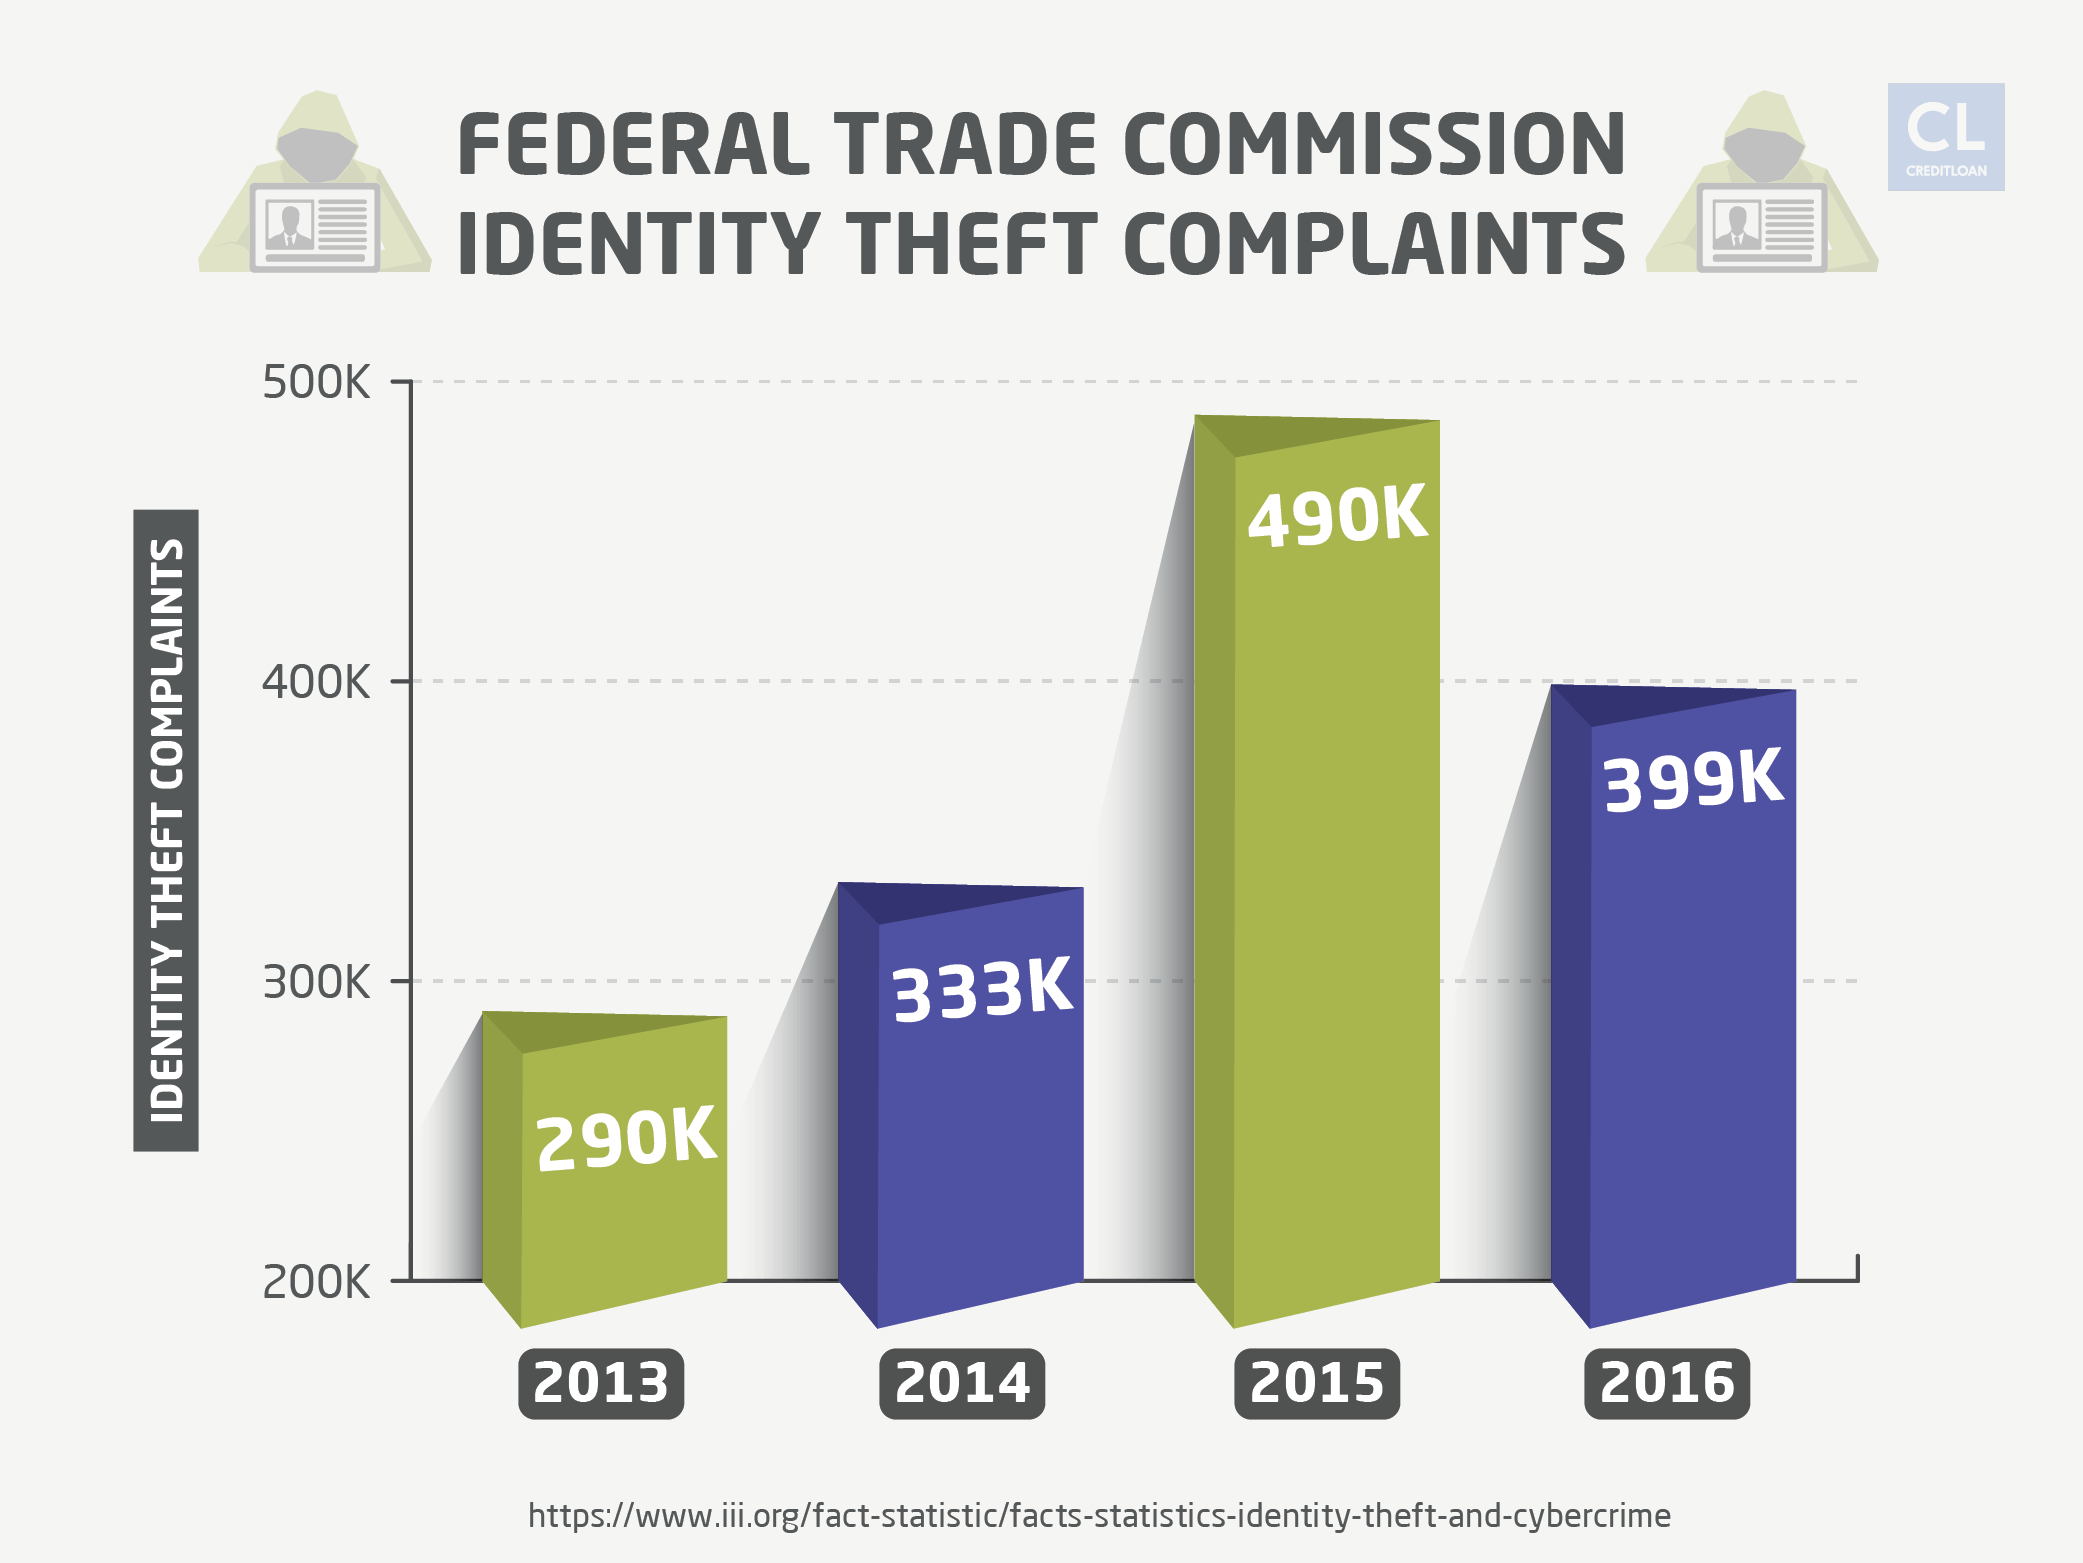 Federal Trade Commission Identity Theft Complaints from 2013-2016